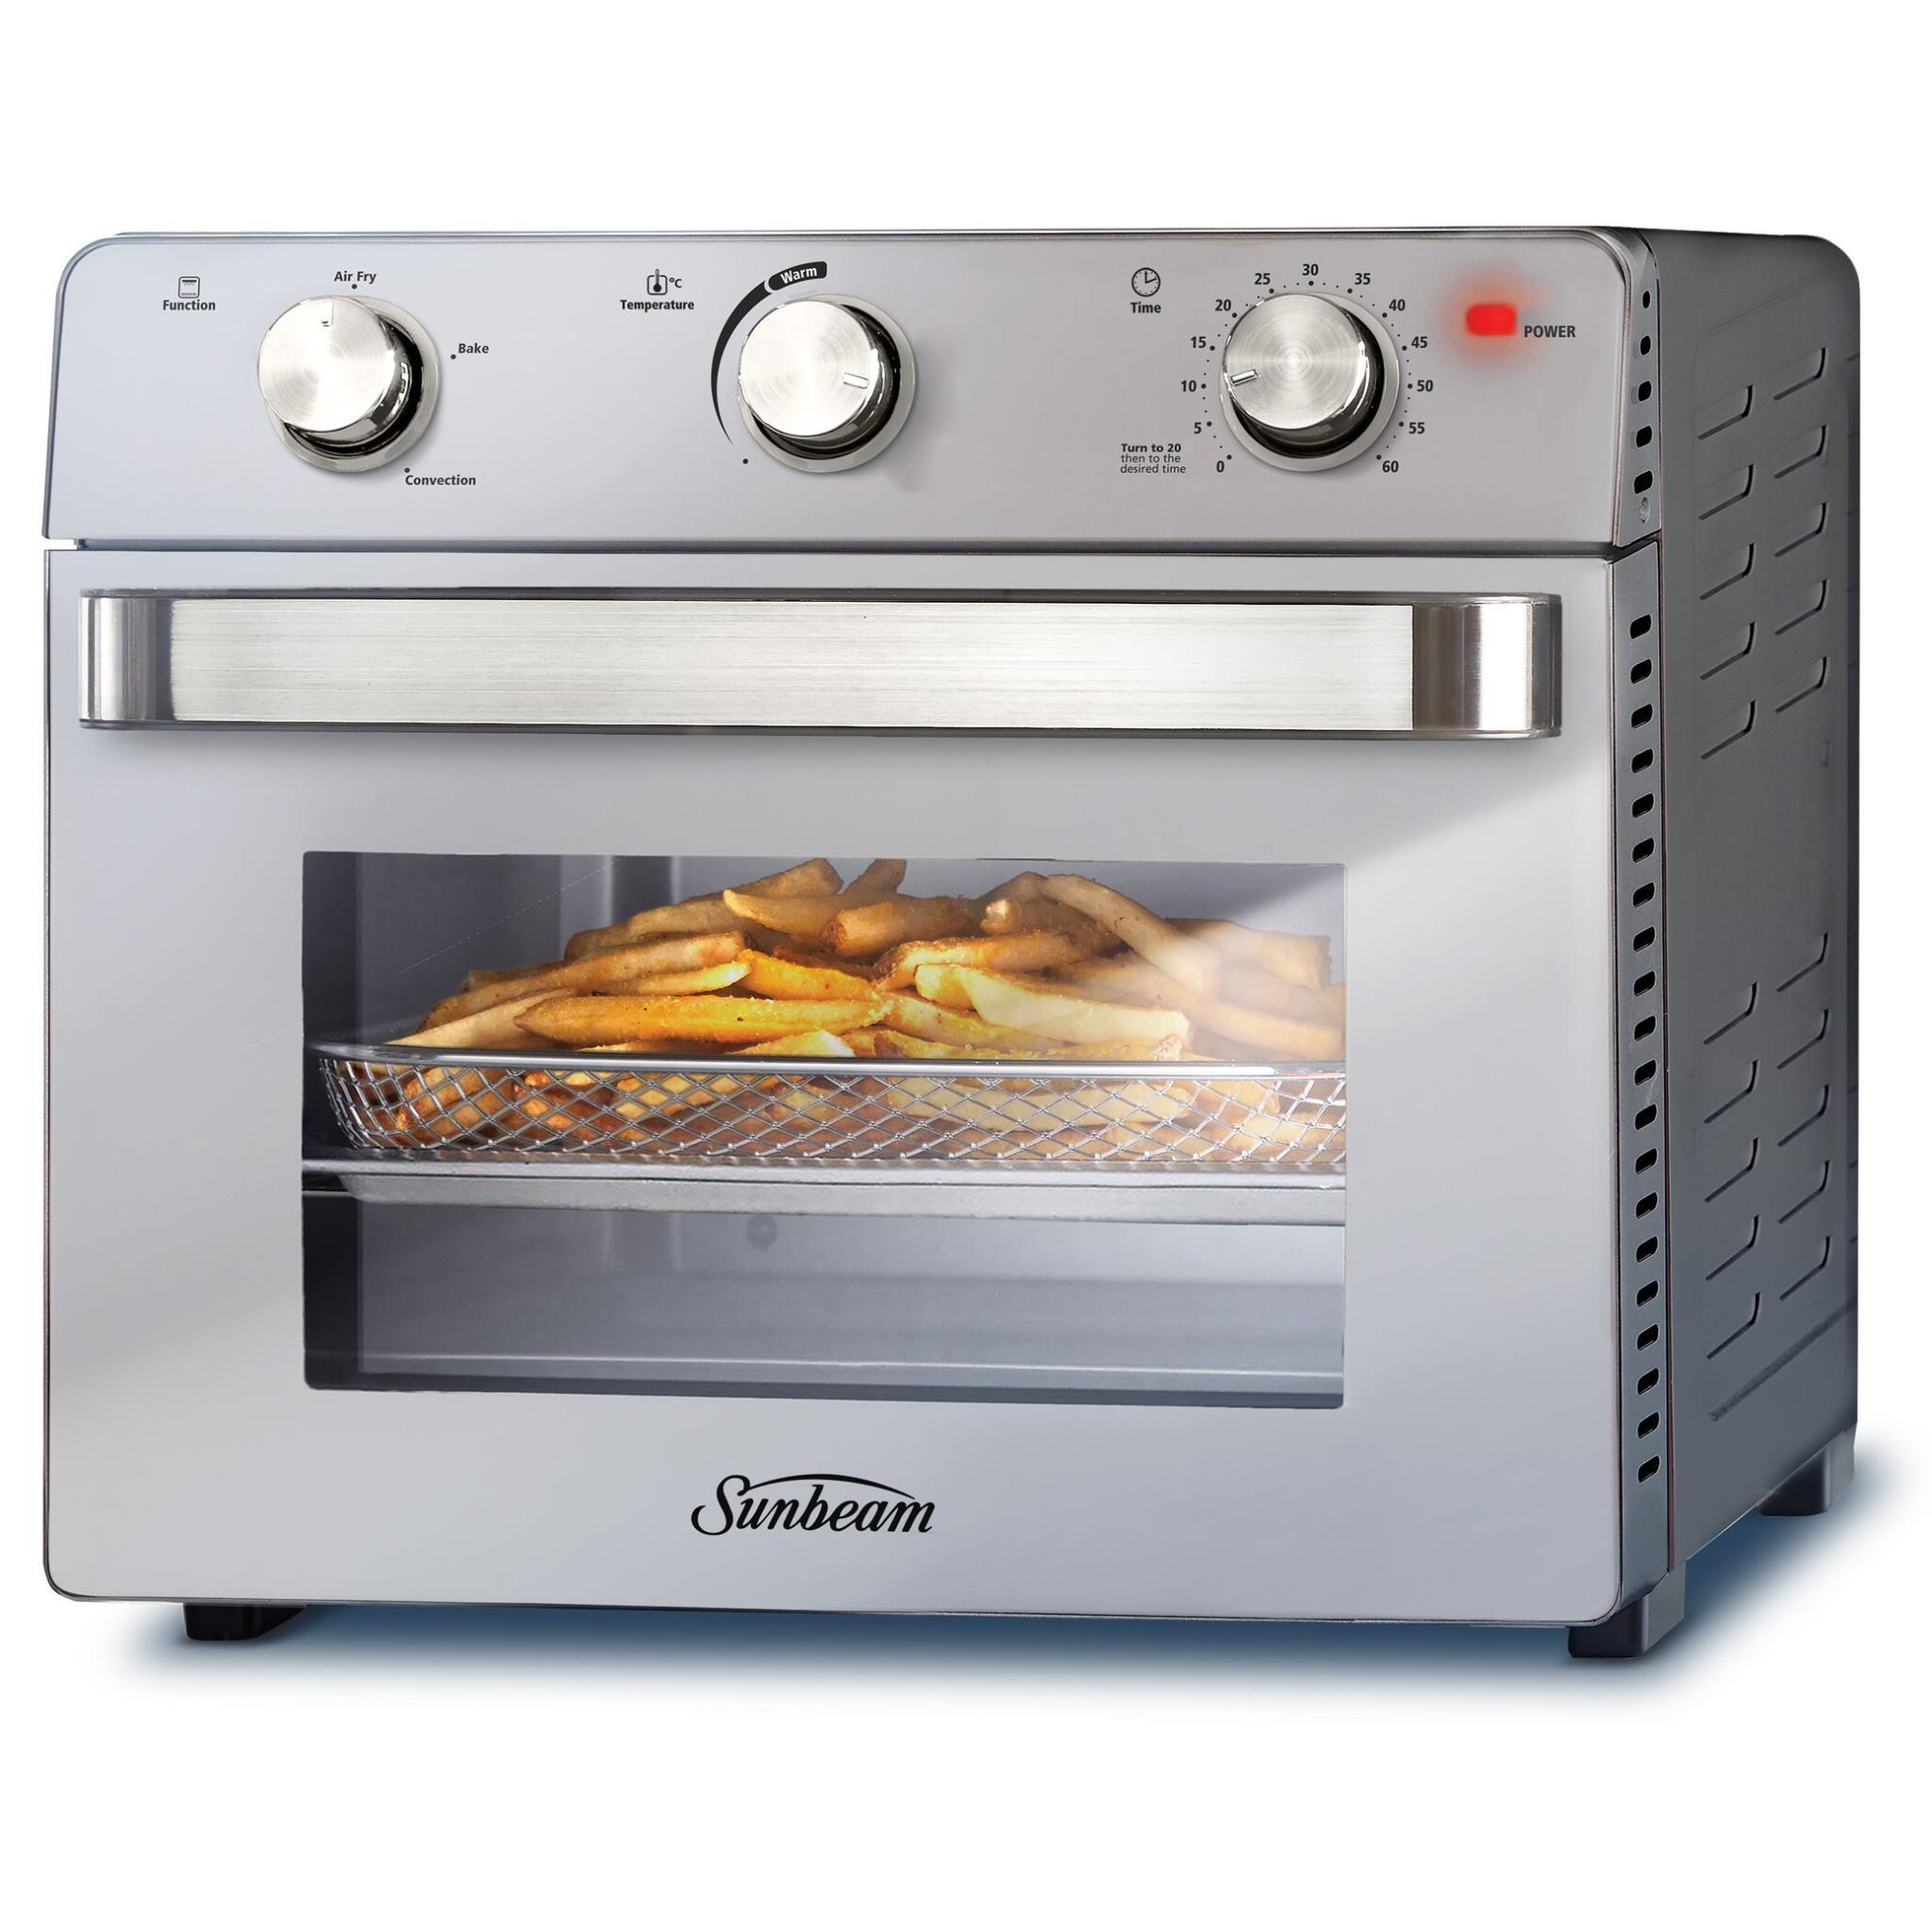 Sunbeam BT7200 Multi-Function Oven & Air Fryer